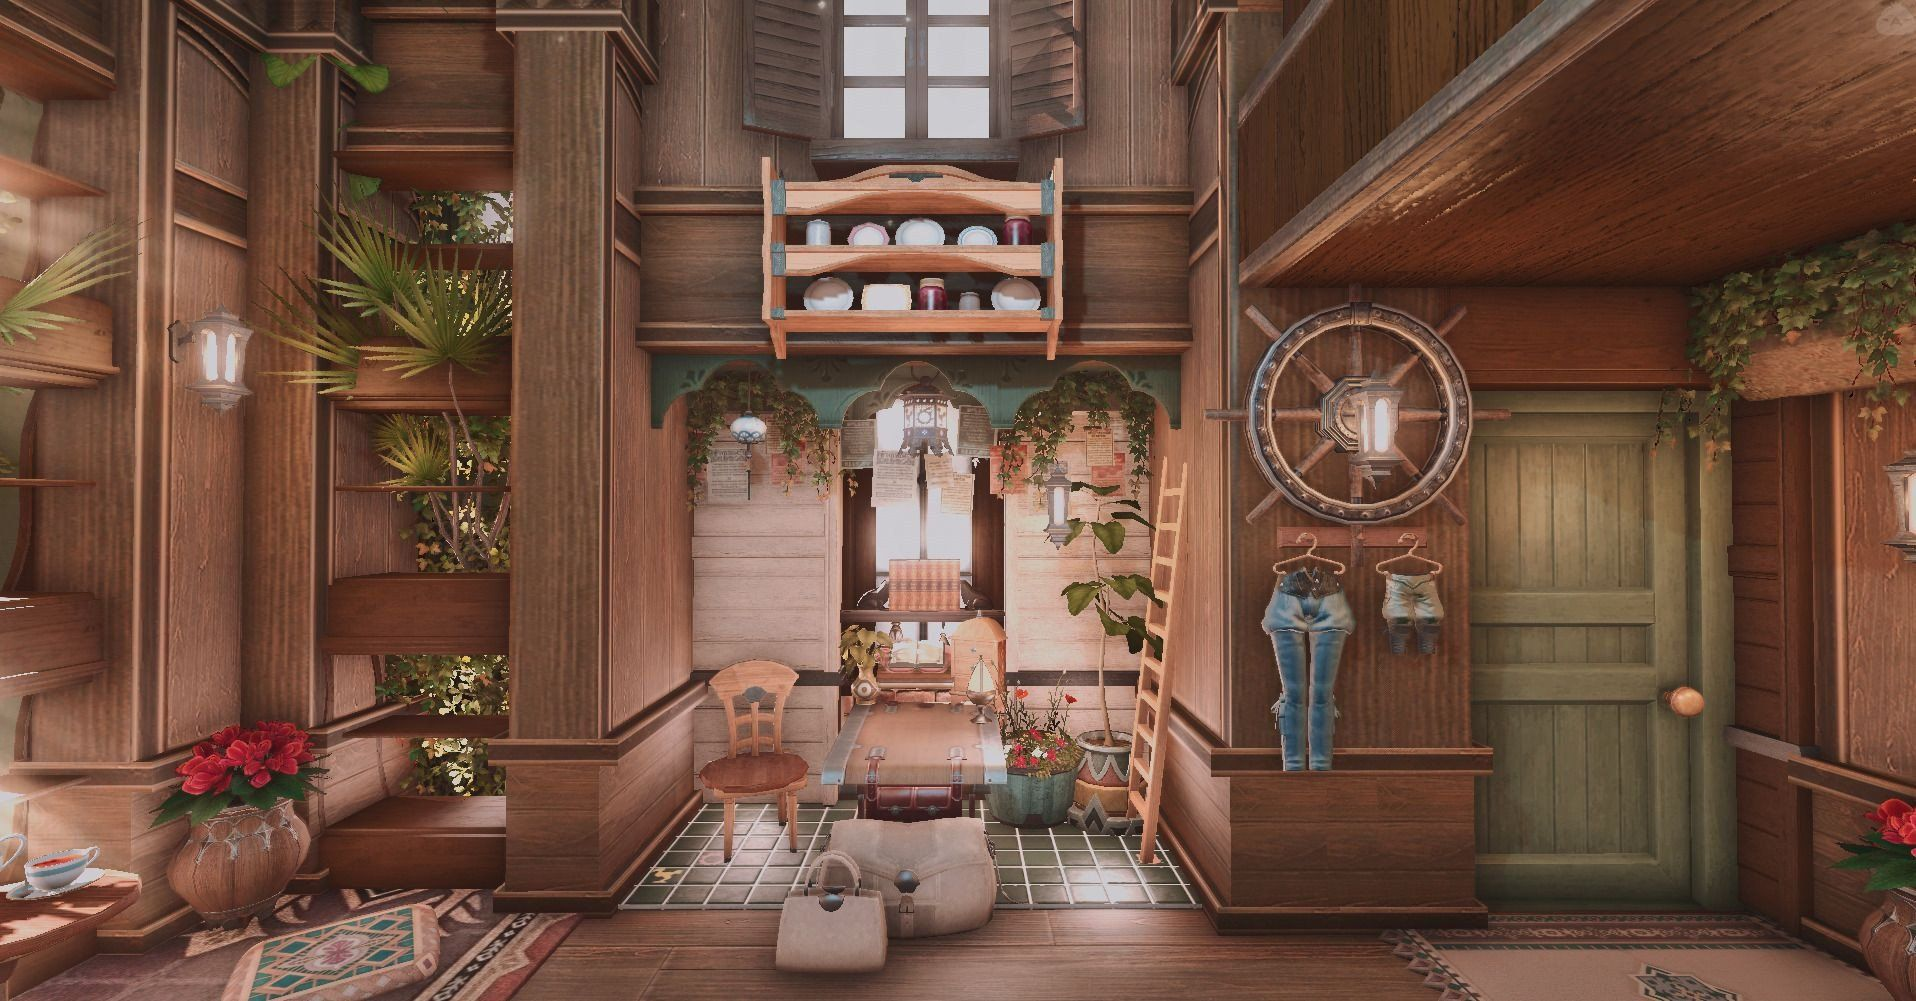 Ffxiv Housing Decoration Ideas Beautiful Forest House Housing Snap Ffxiv Housing In 2019 Fantasy House Forest House House